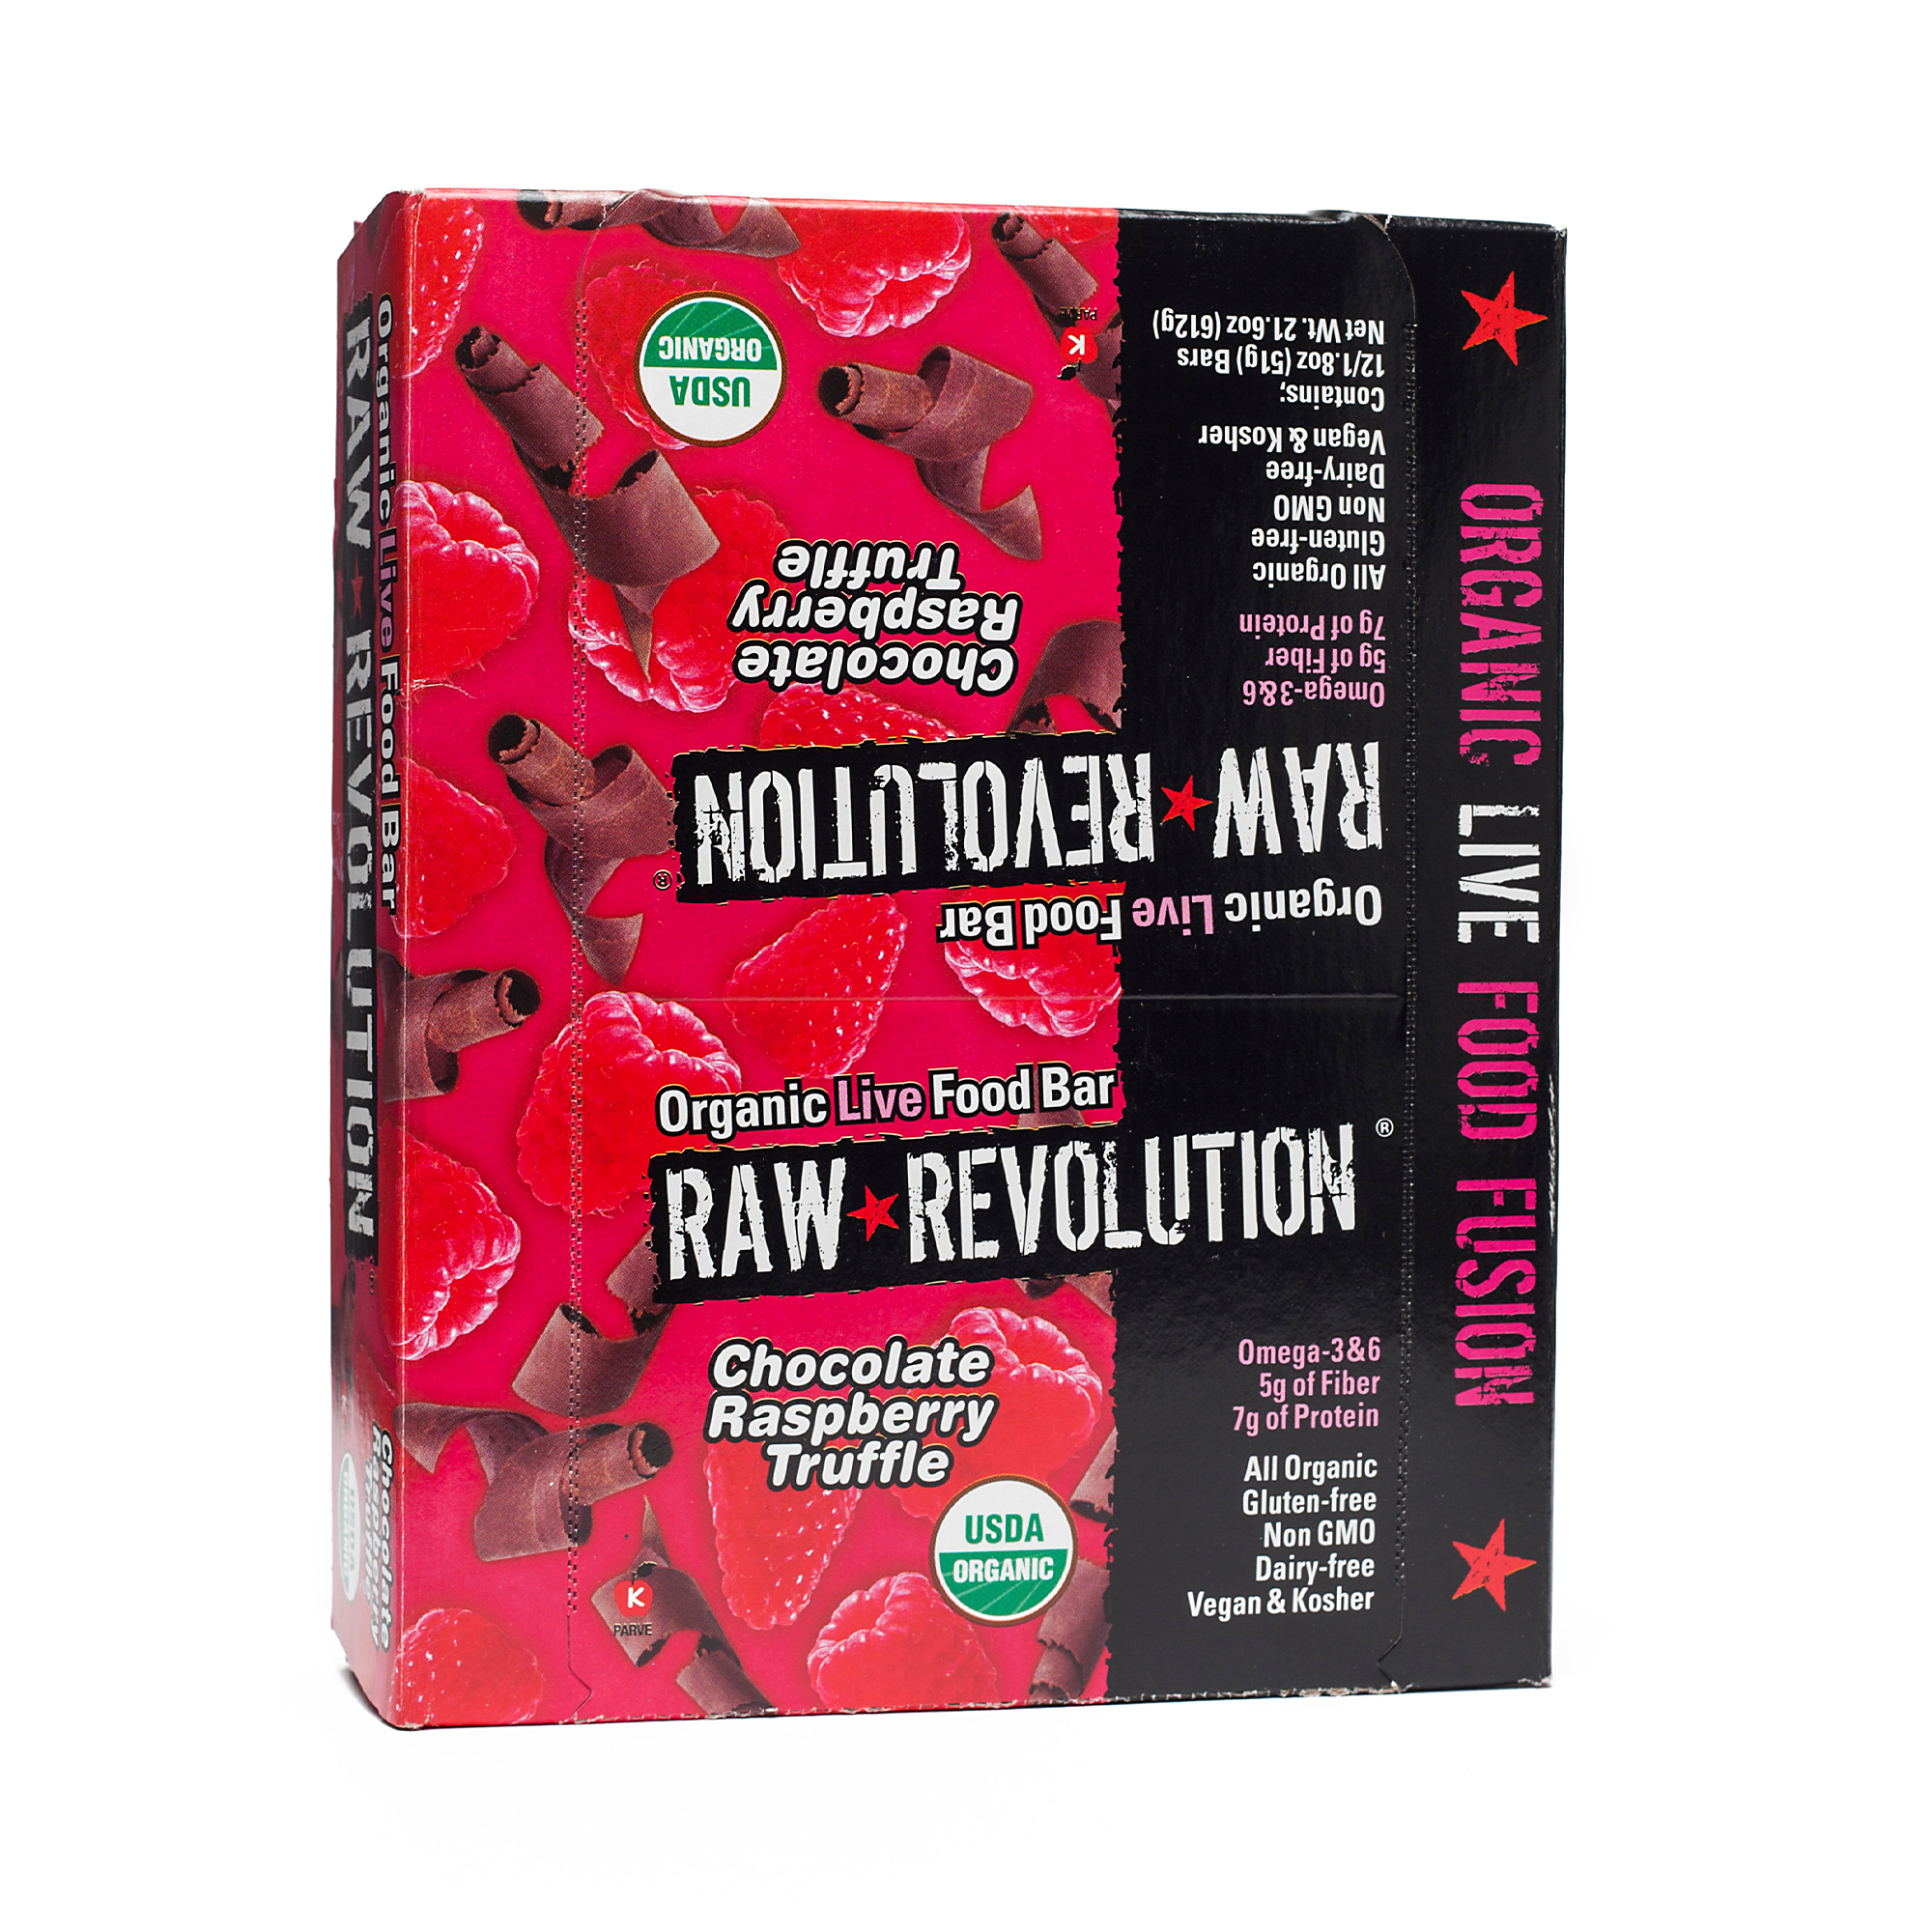 Raw Revolution Chocolate Raspberry Truffle